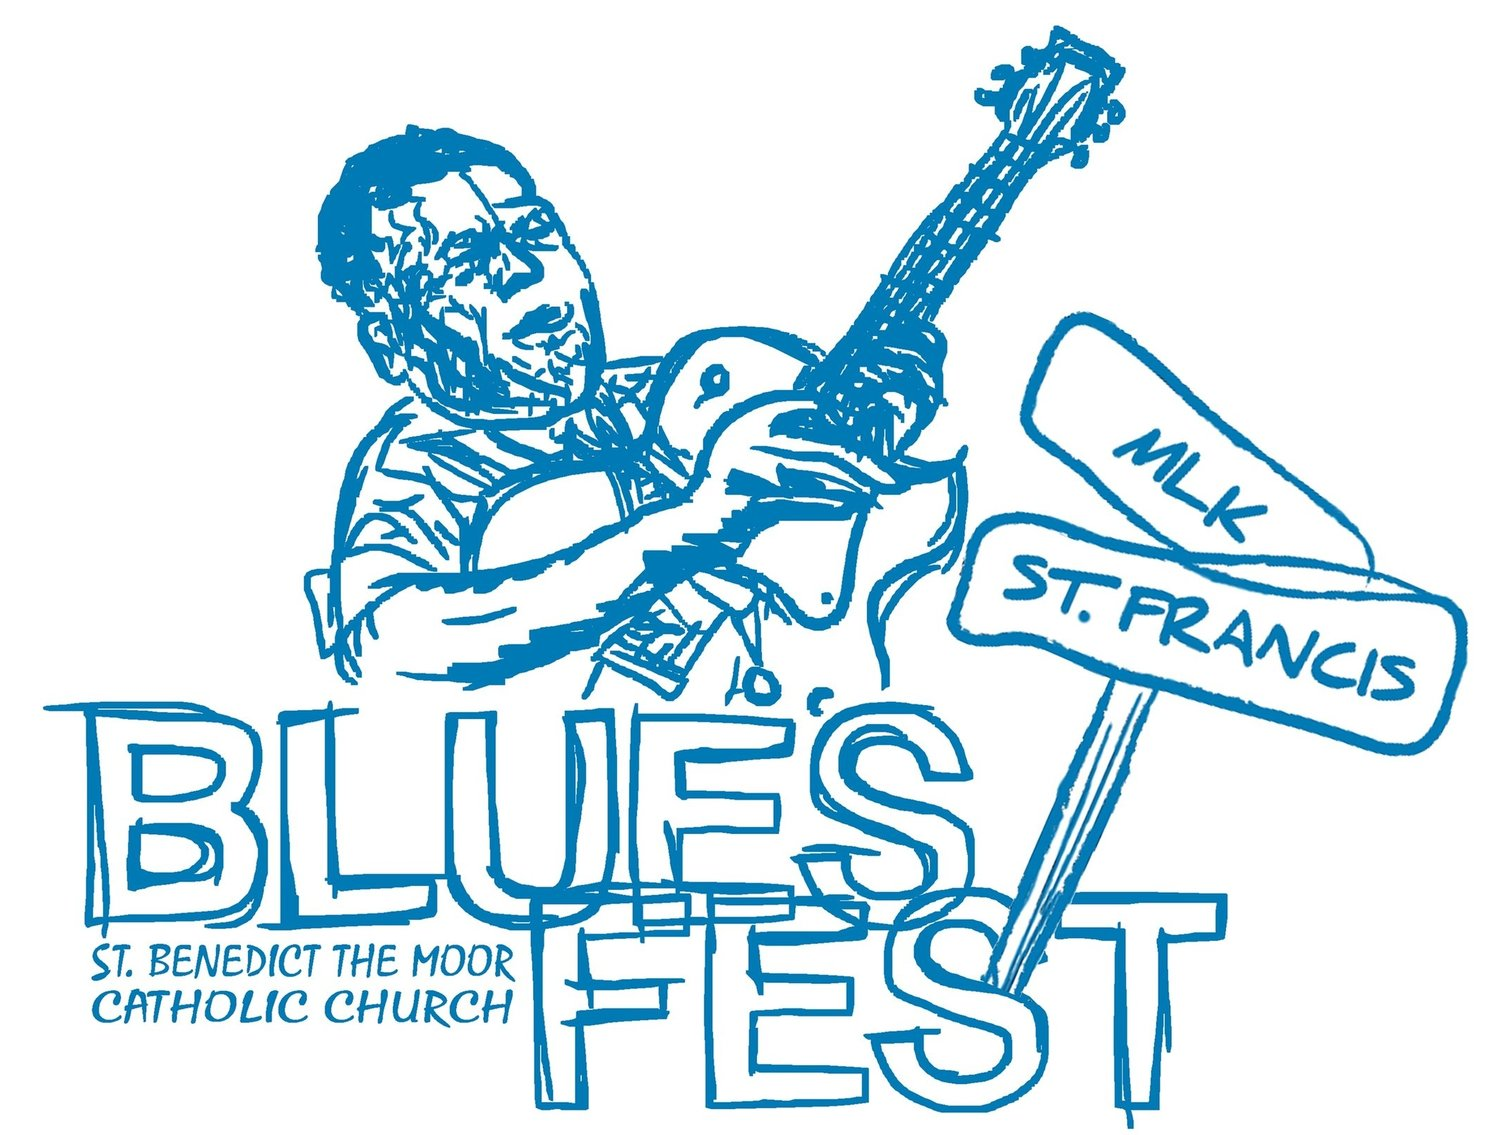 St Benedict the Moor Blues Fest